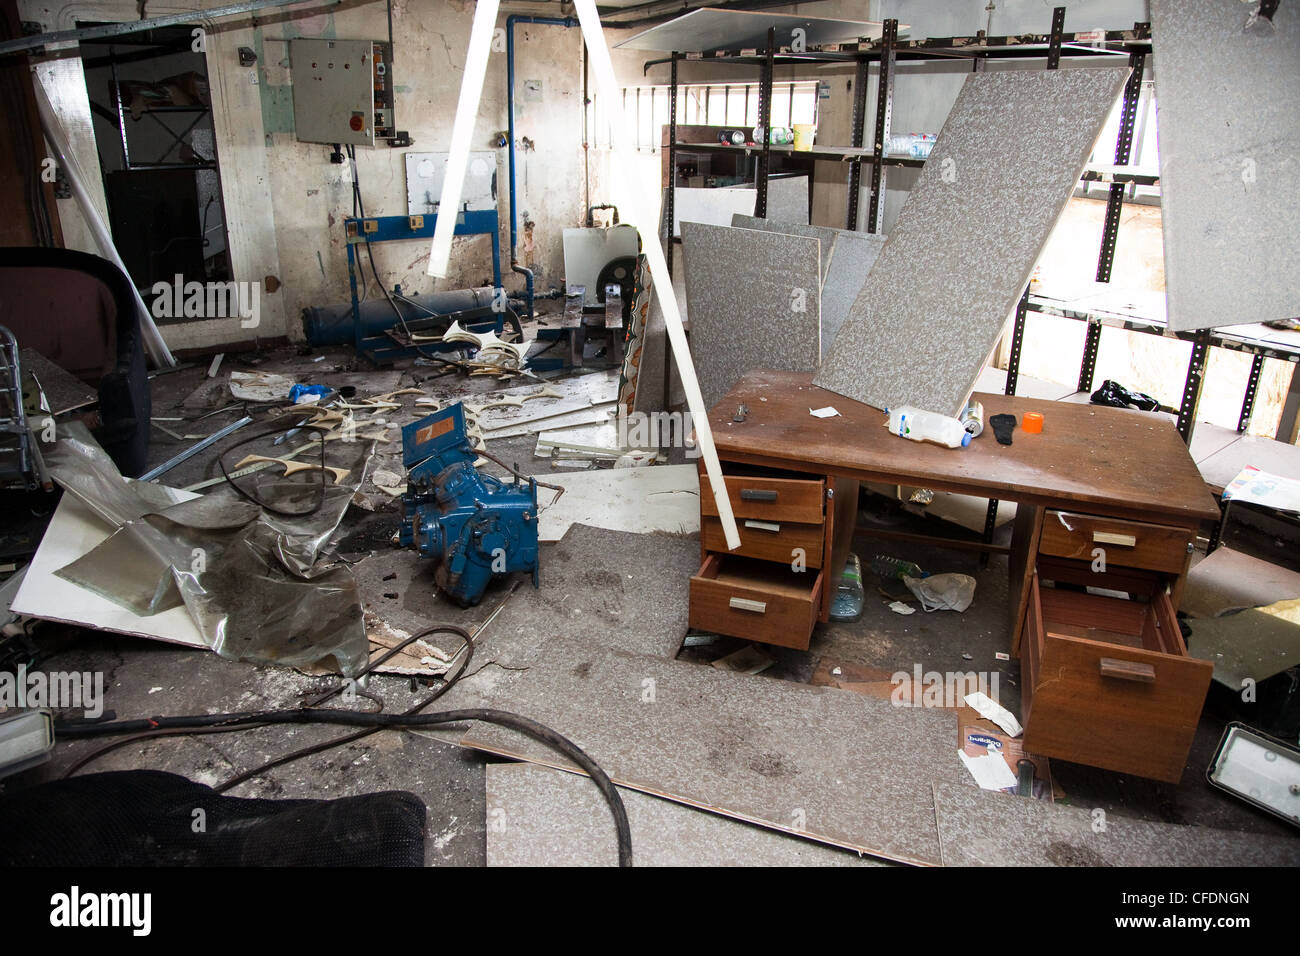 Seven sisters Tottenham London UK. Ruined office in vacated cold storage warehouse. Now inhabited by homeless people. & Seven sisters Tottenham London UK. Ruined office in vacated cold ...